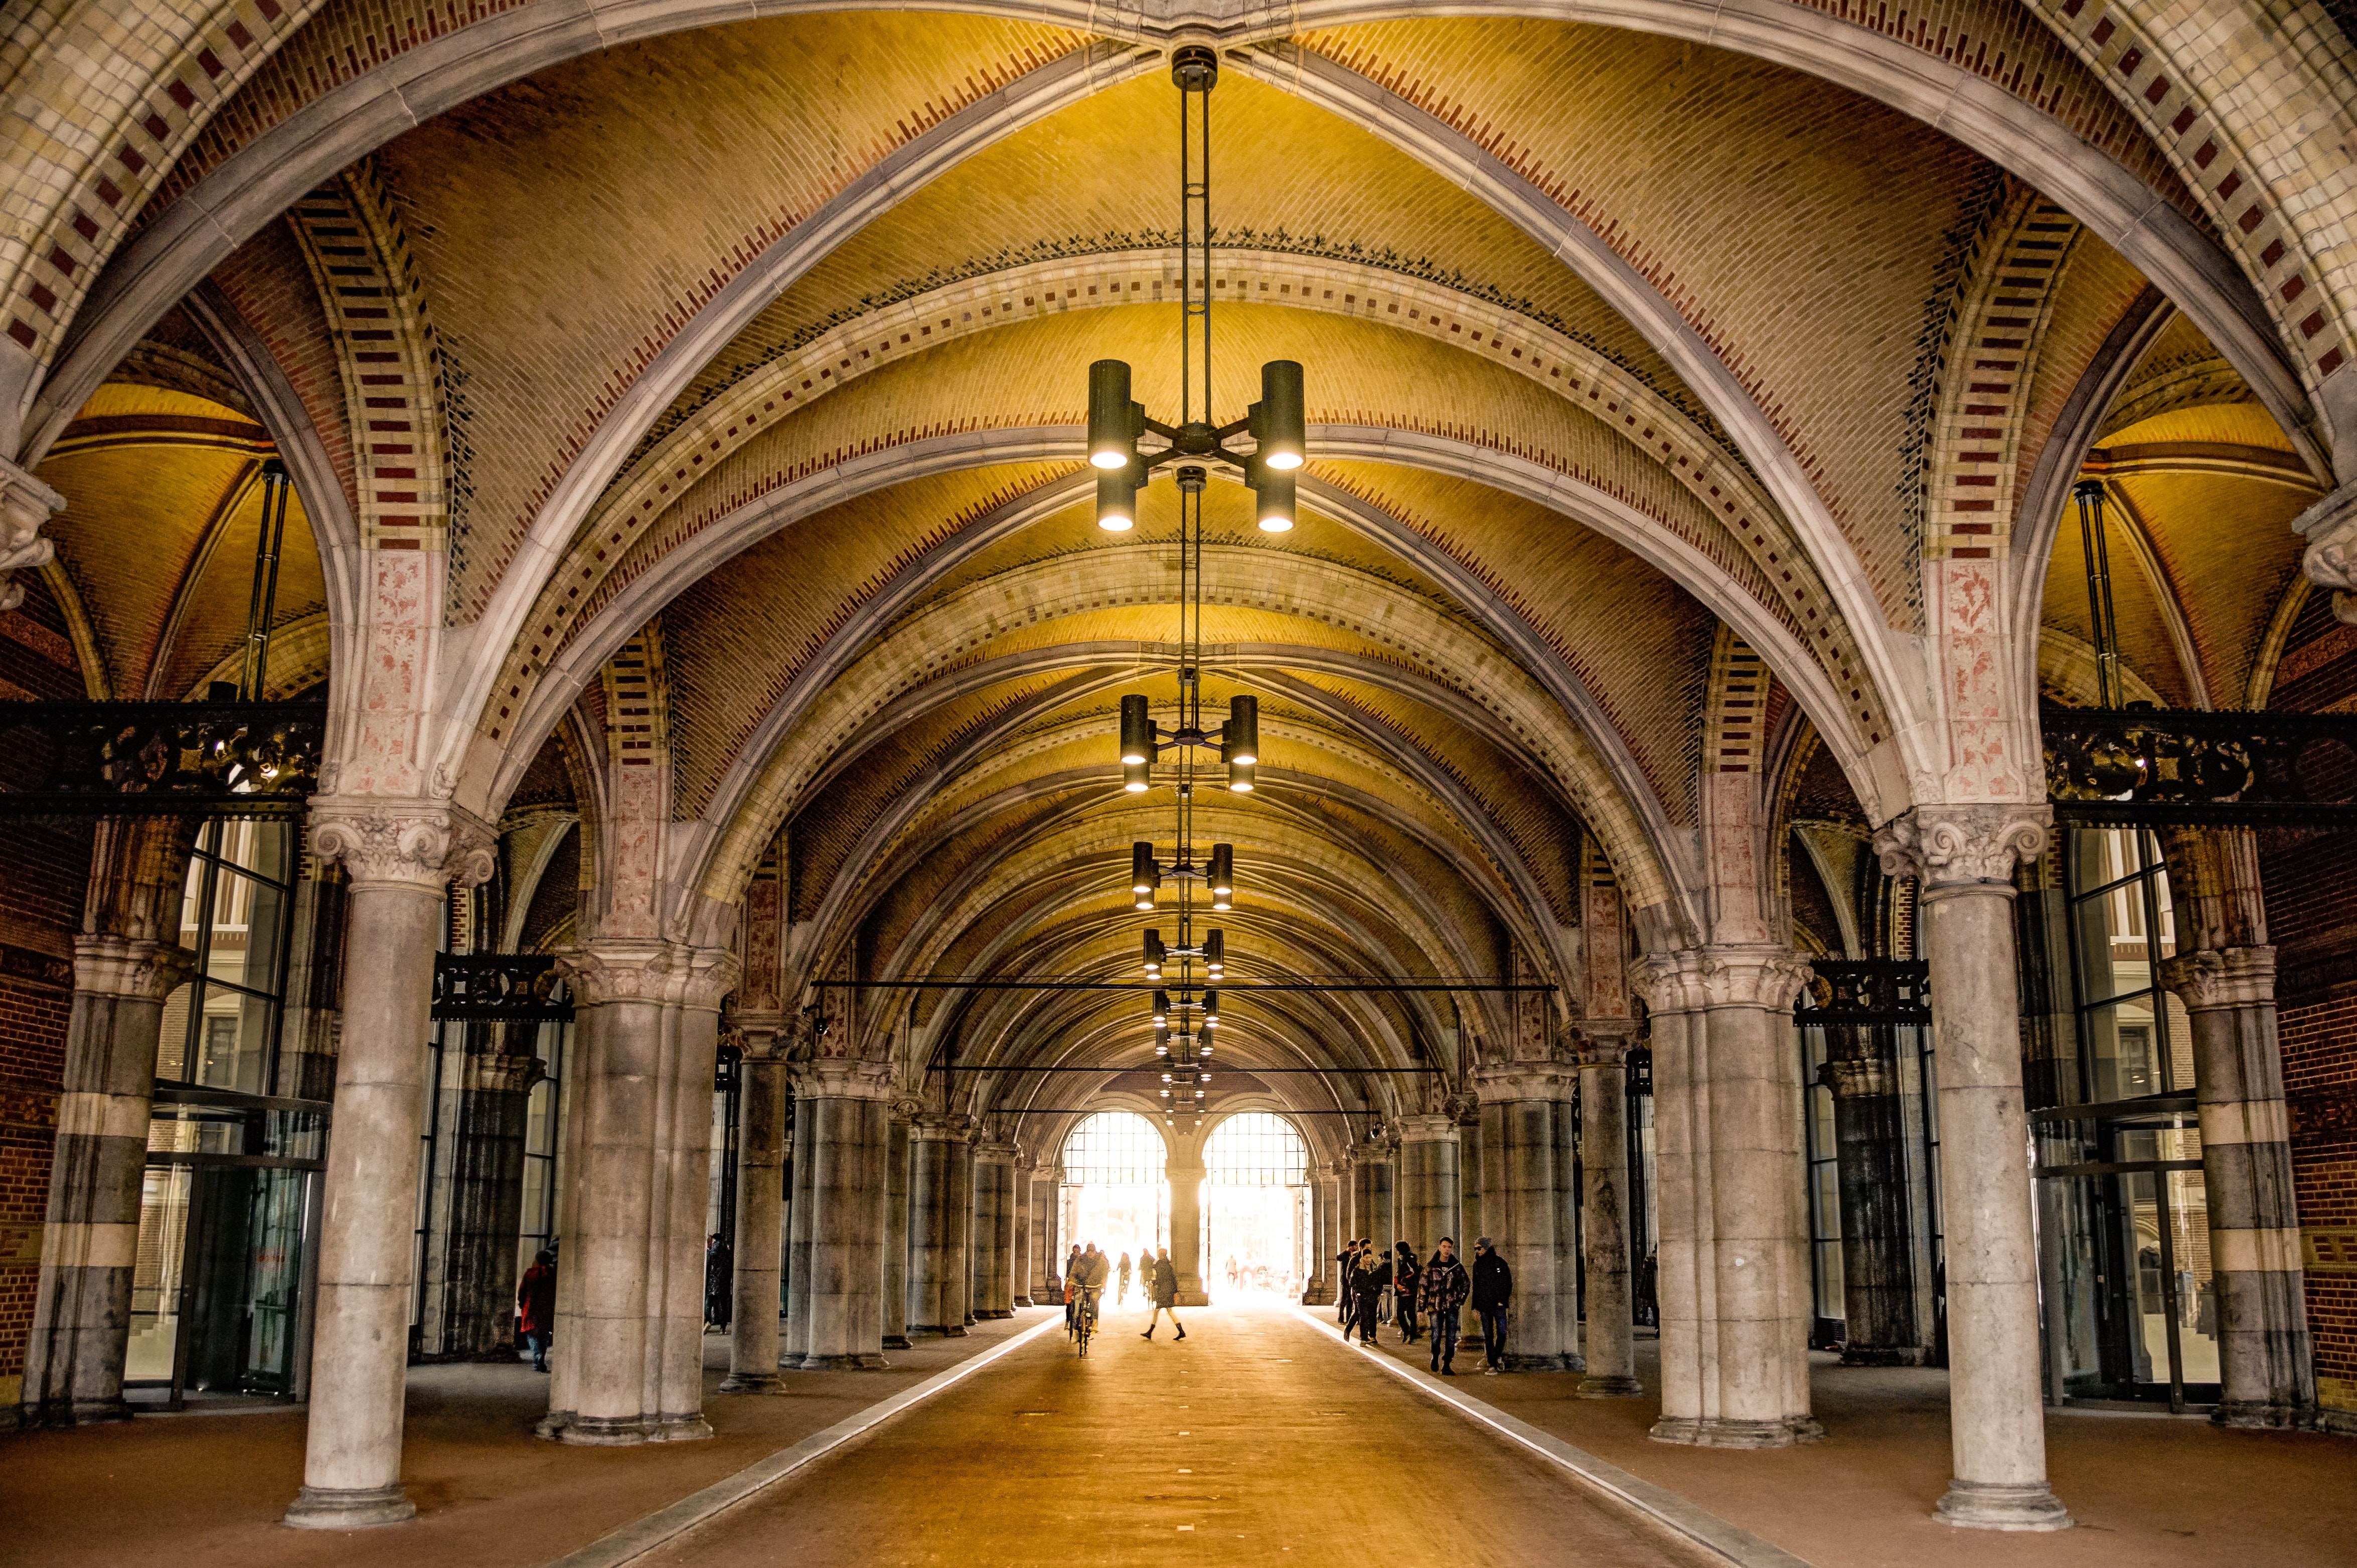 People on Gray and Beige Mansion during Daytime, Arches, Architecture, Building, Pillars, HQ Photo